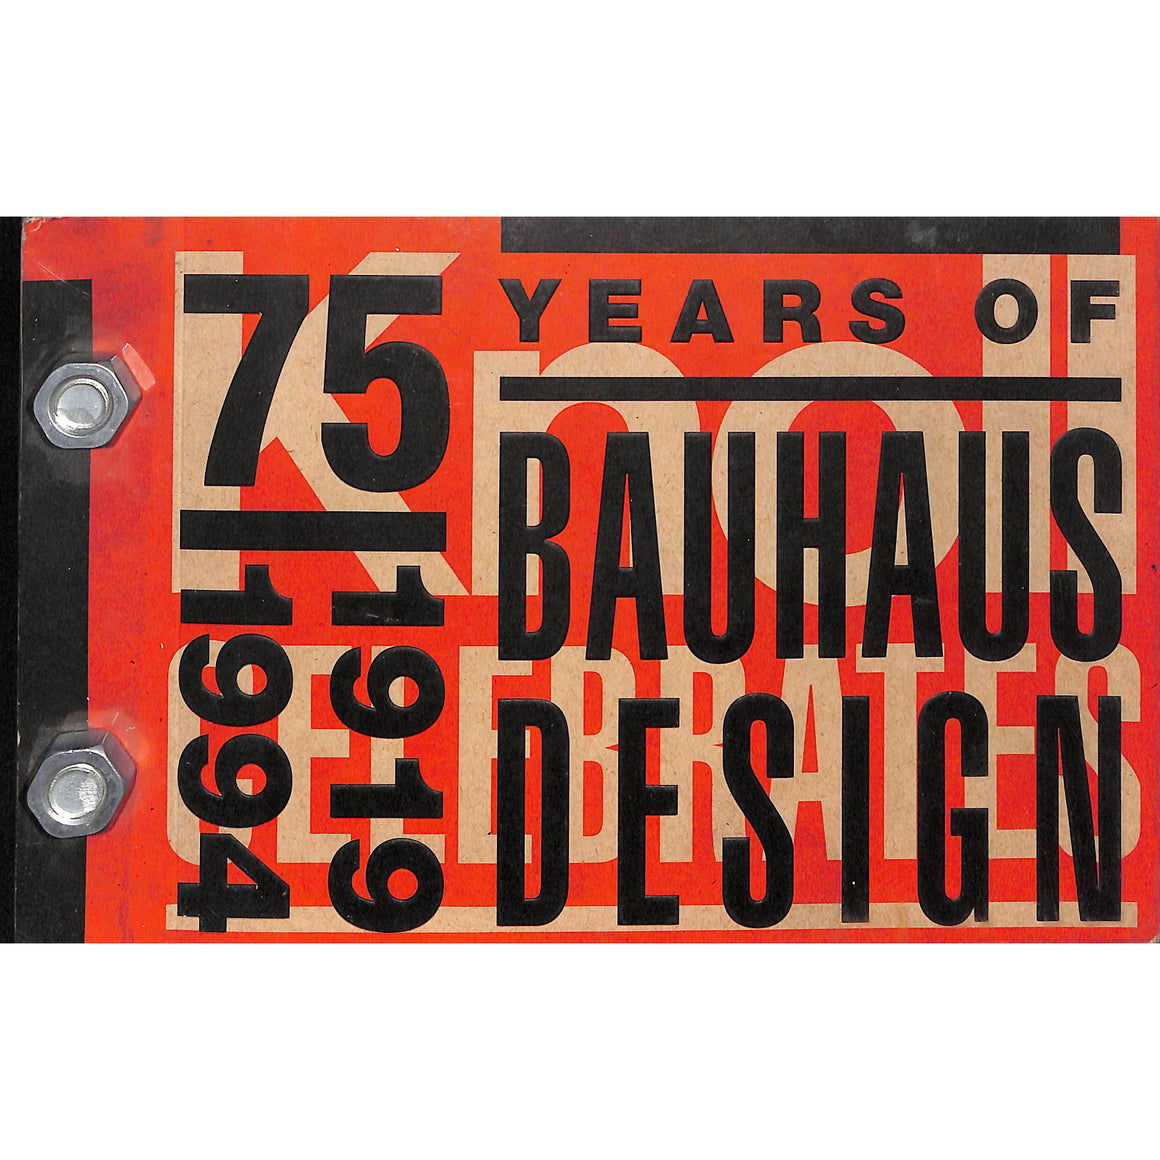 75 Years Of Bauhaus Design 1919-1994